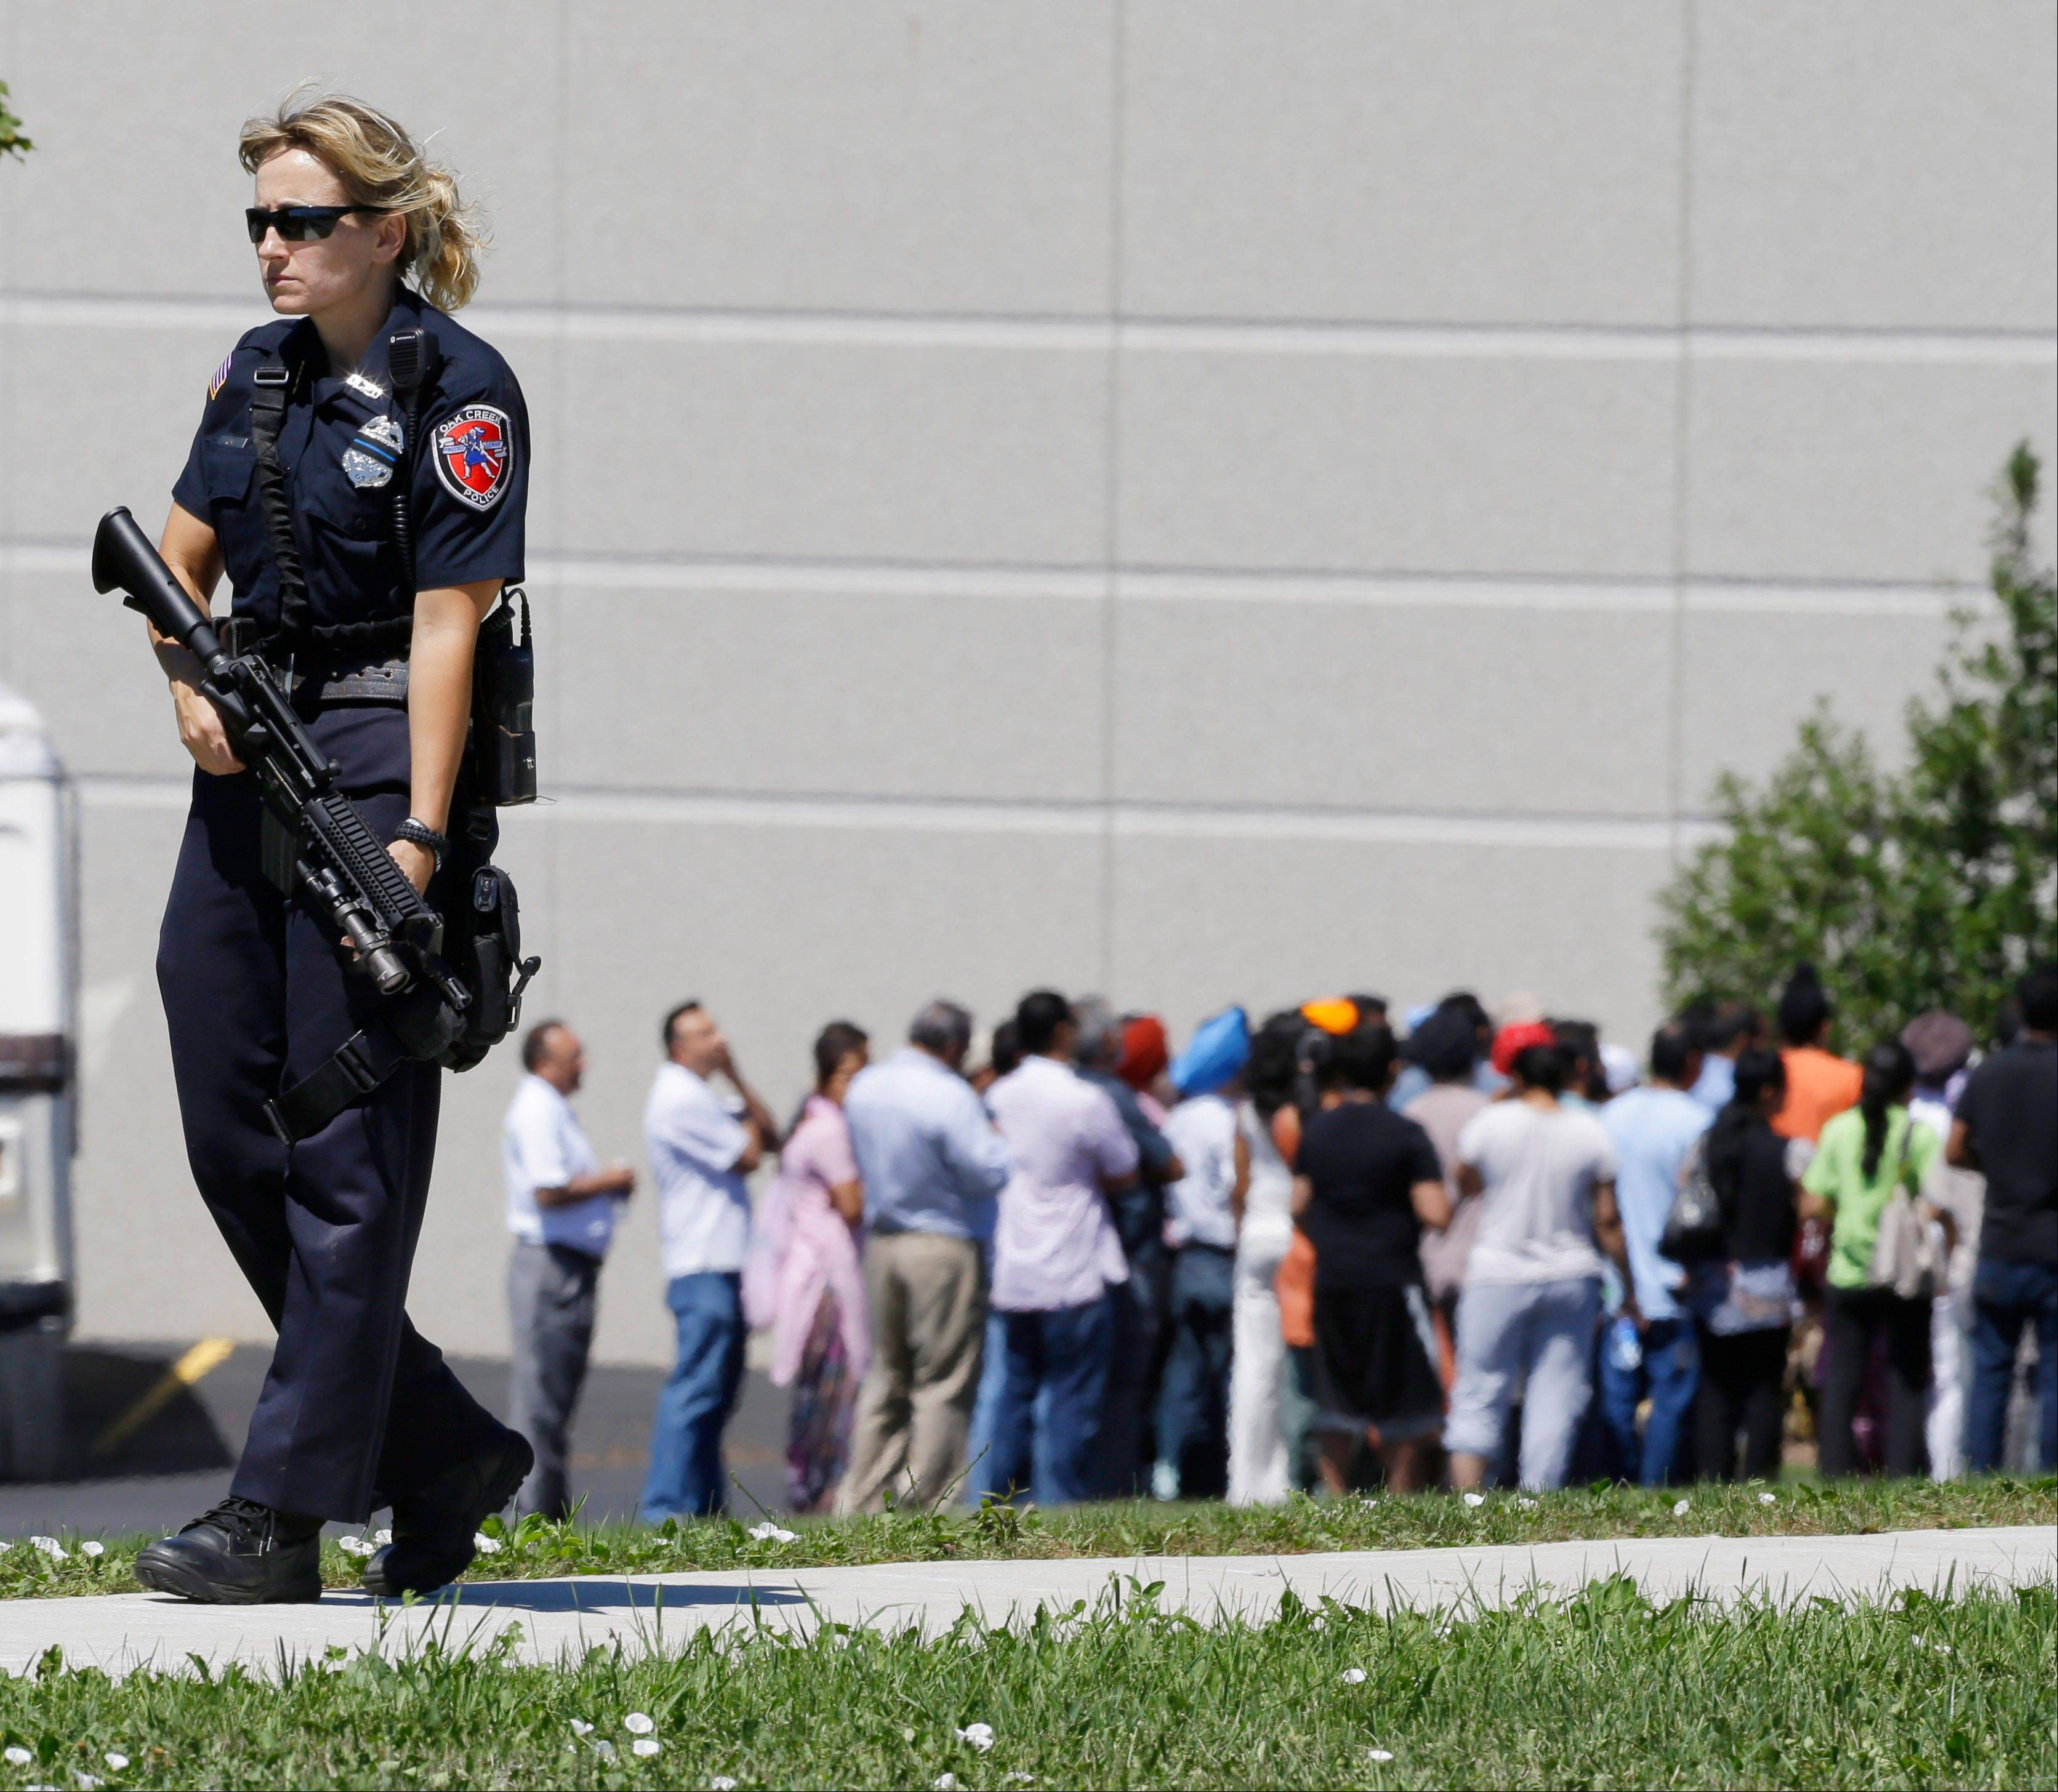 Police stand guard Sunday as bystanders watch at the scene of a shooting inside a Sikh temple in Oak Creek, Wis.